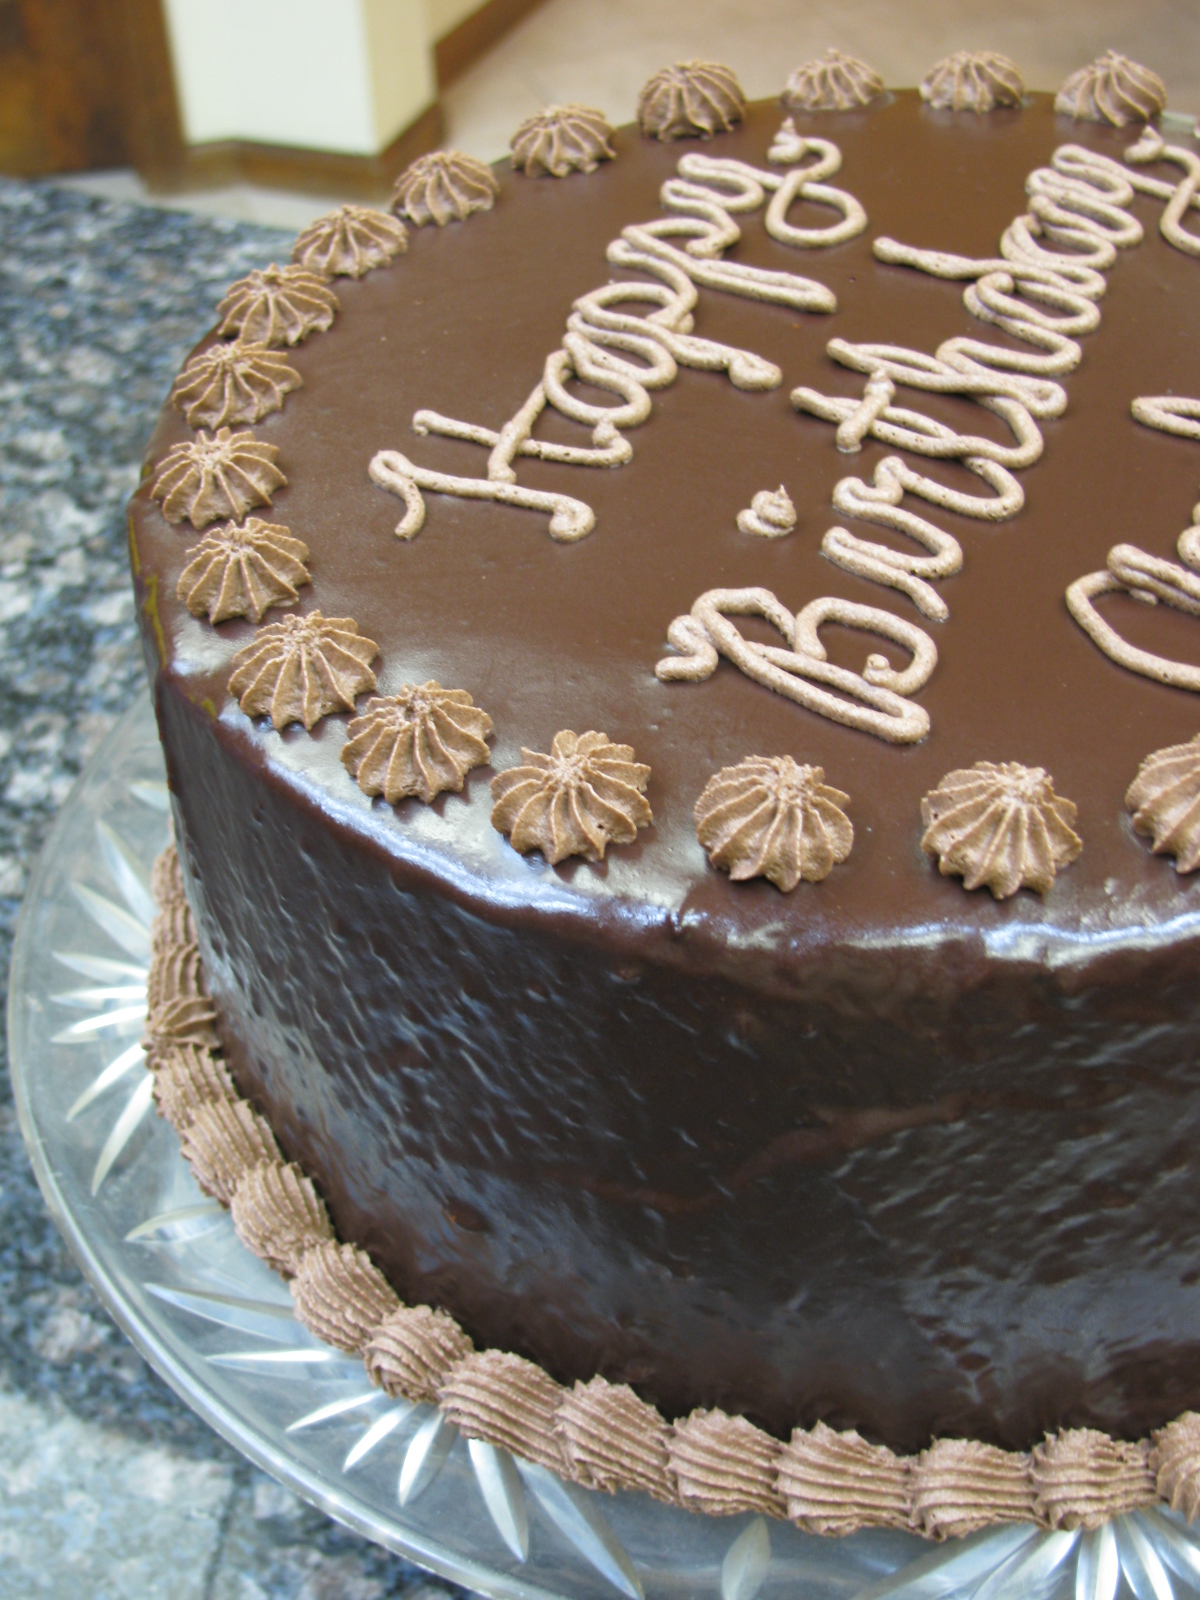 Decorator's Chocolate Buttercream Frosting | Family Heritage Recipes